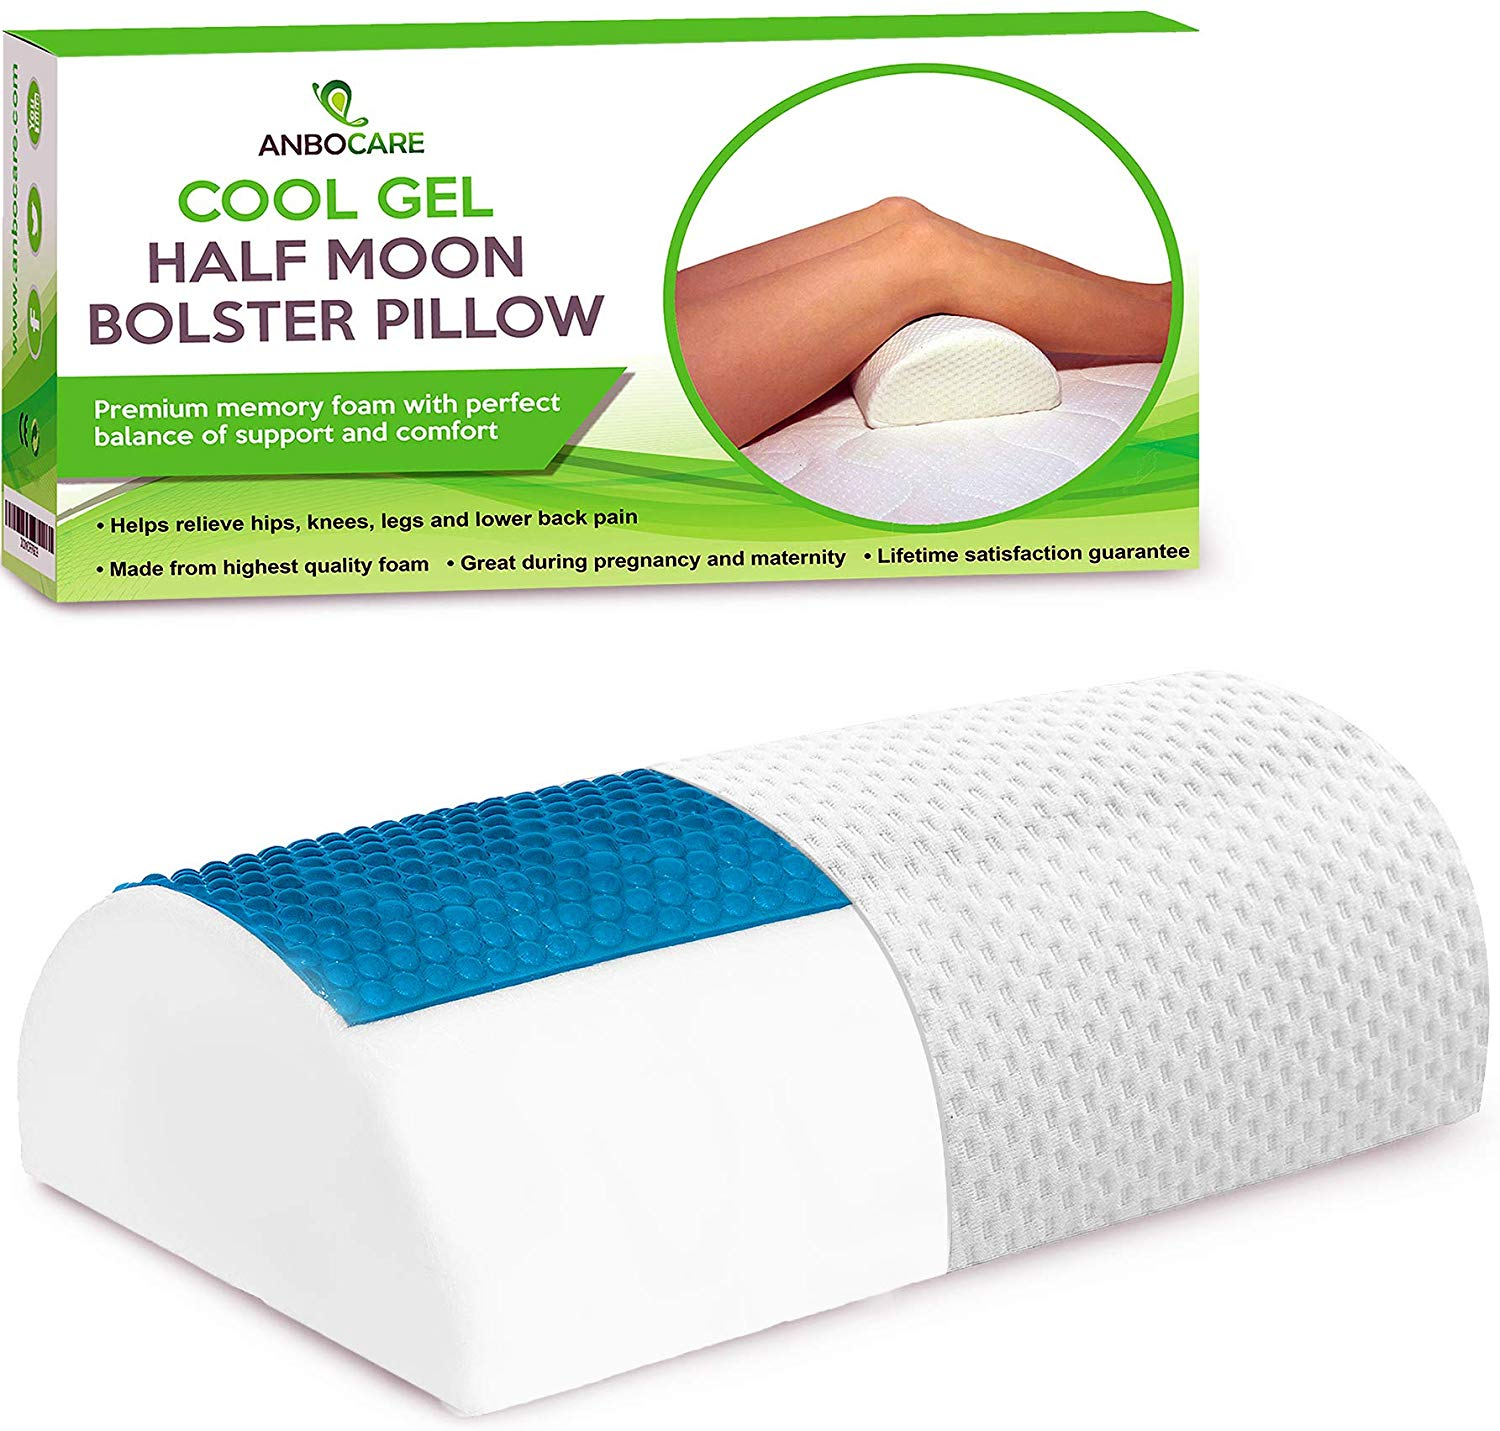 AnboCare Best Knee Pillow review by www.dailysleep.org